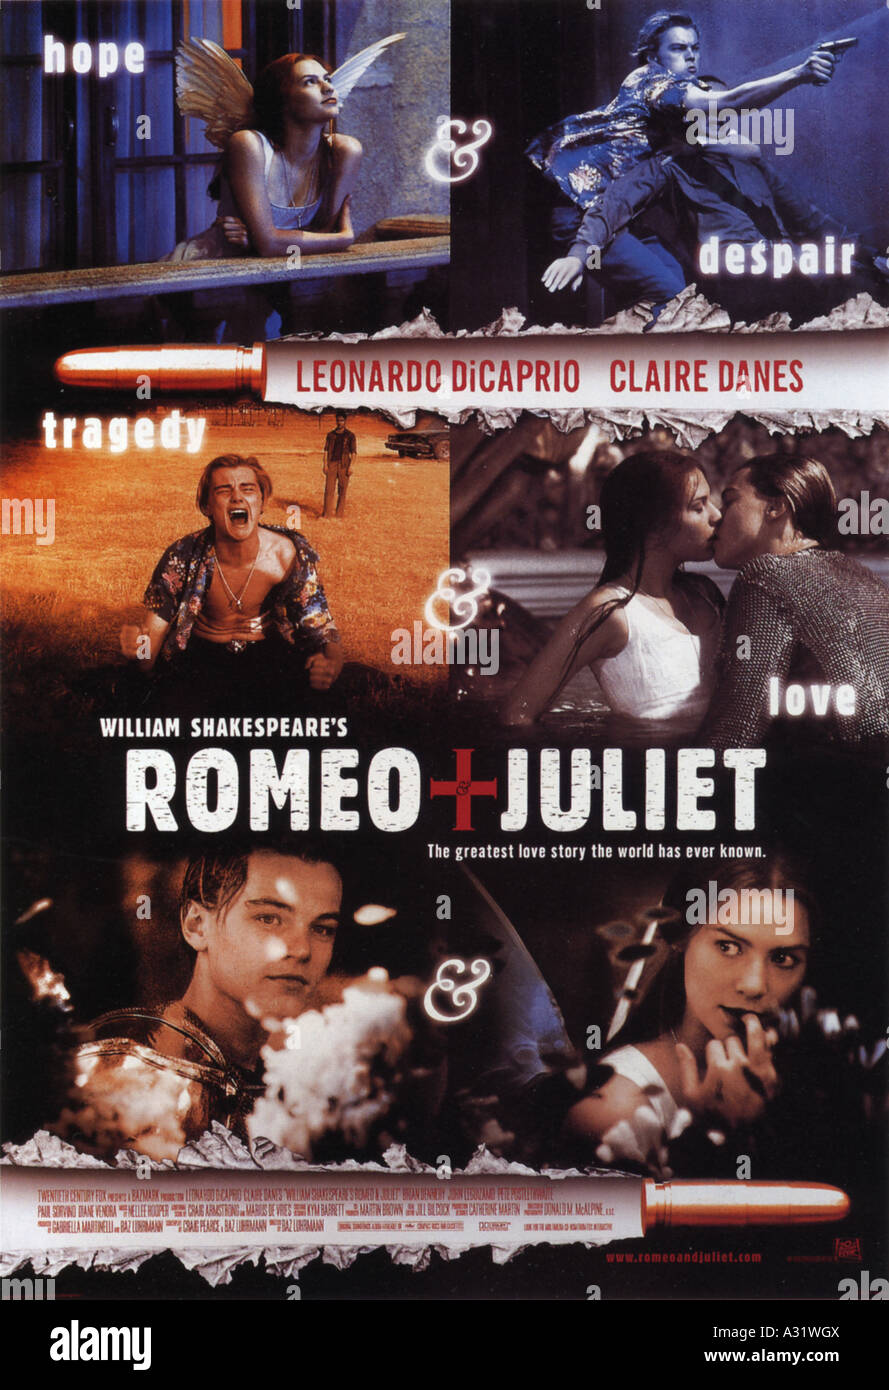 william shakespeares romeo and juliet poster for 1996 tcf